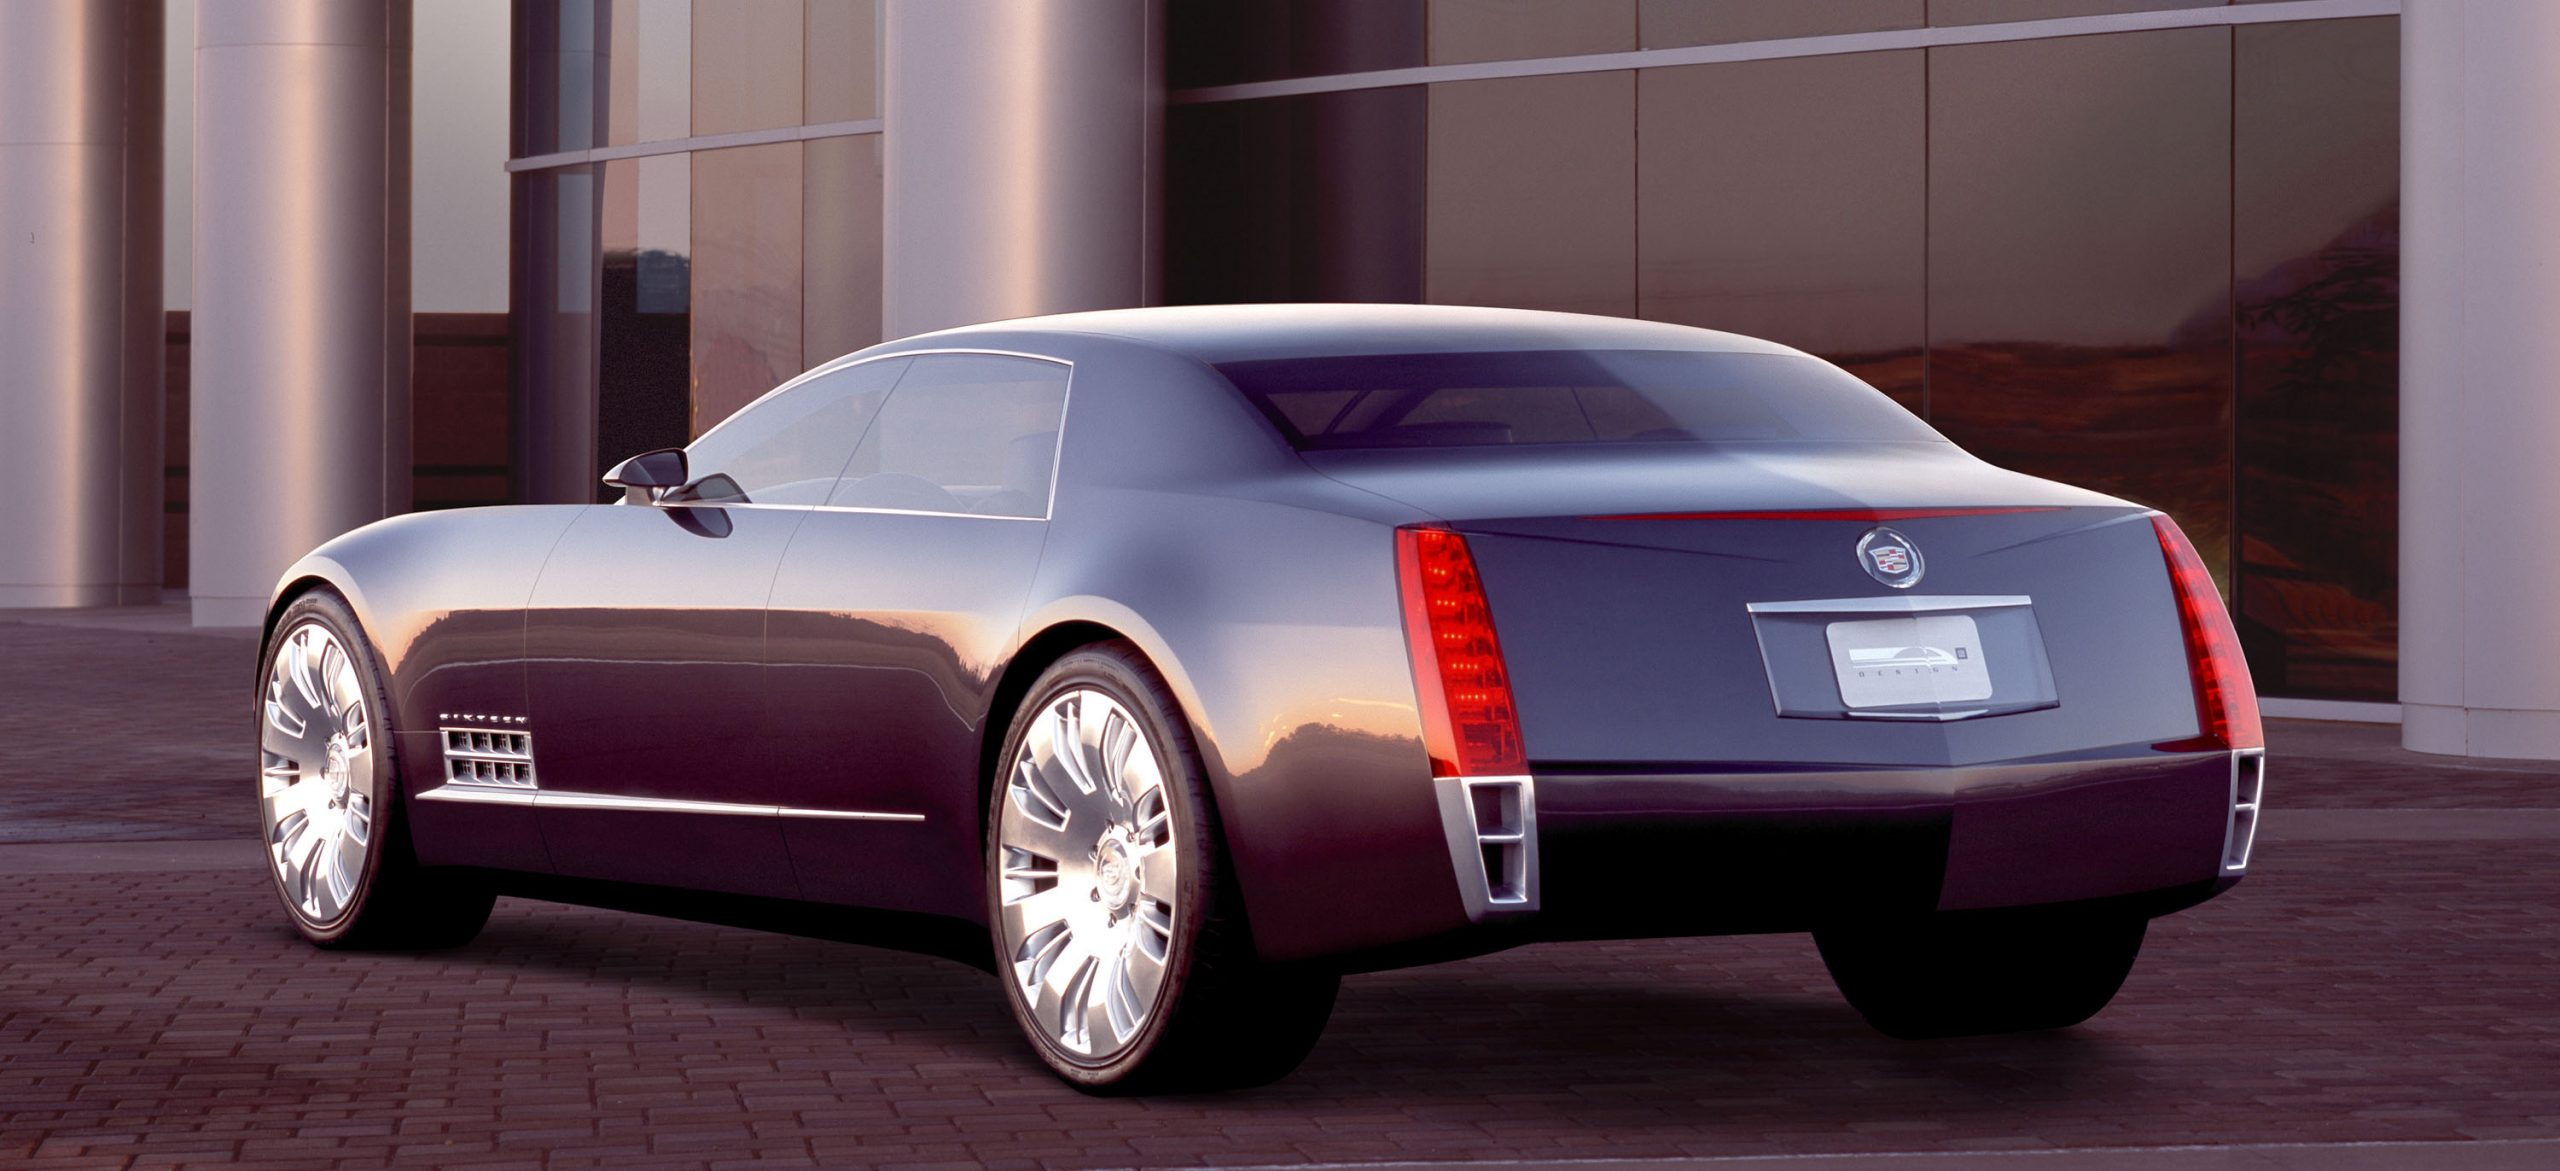 Cadillac Sixteen Concept Exterior Rear Three-Quarter